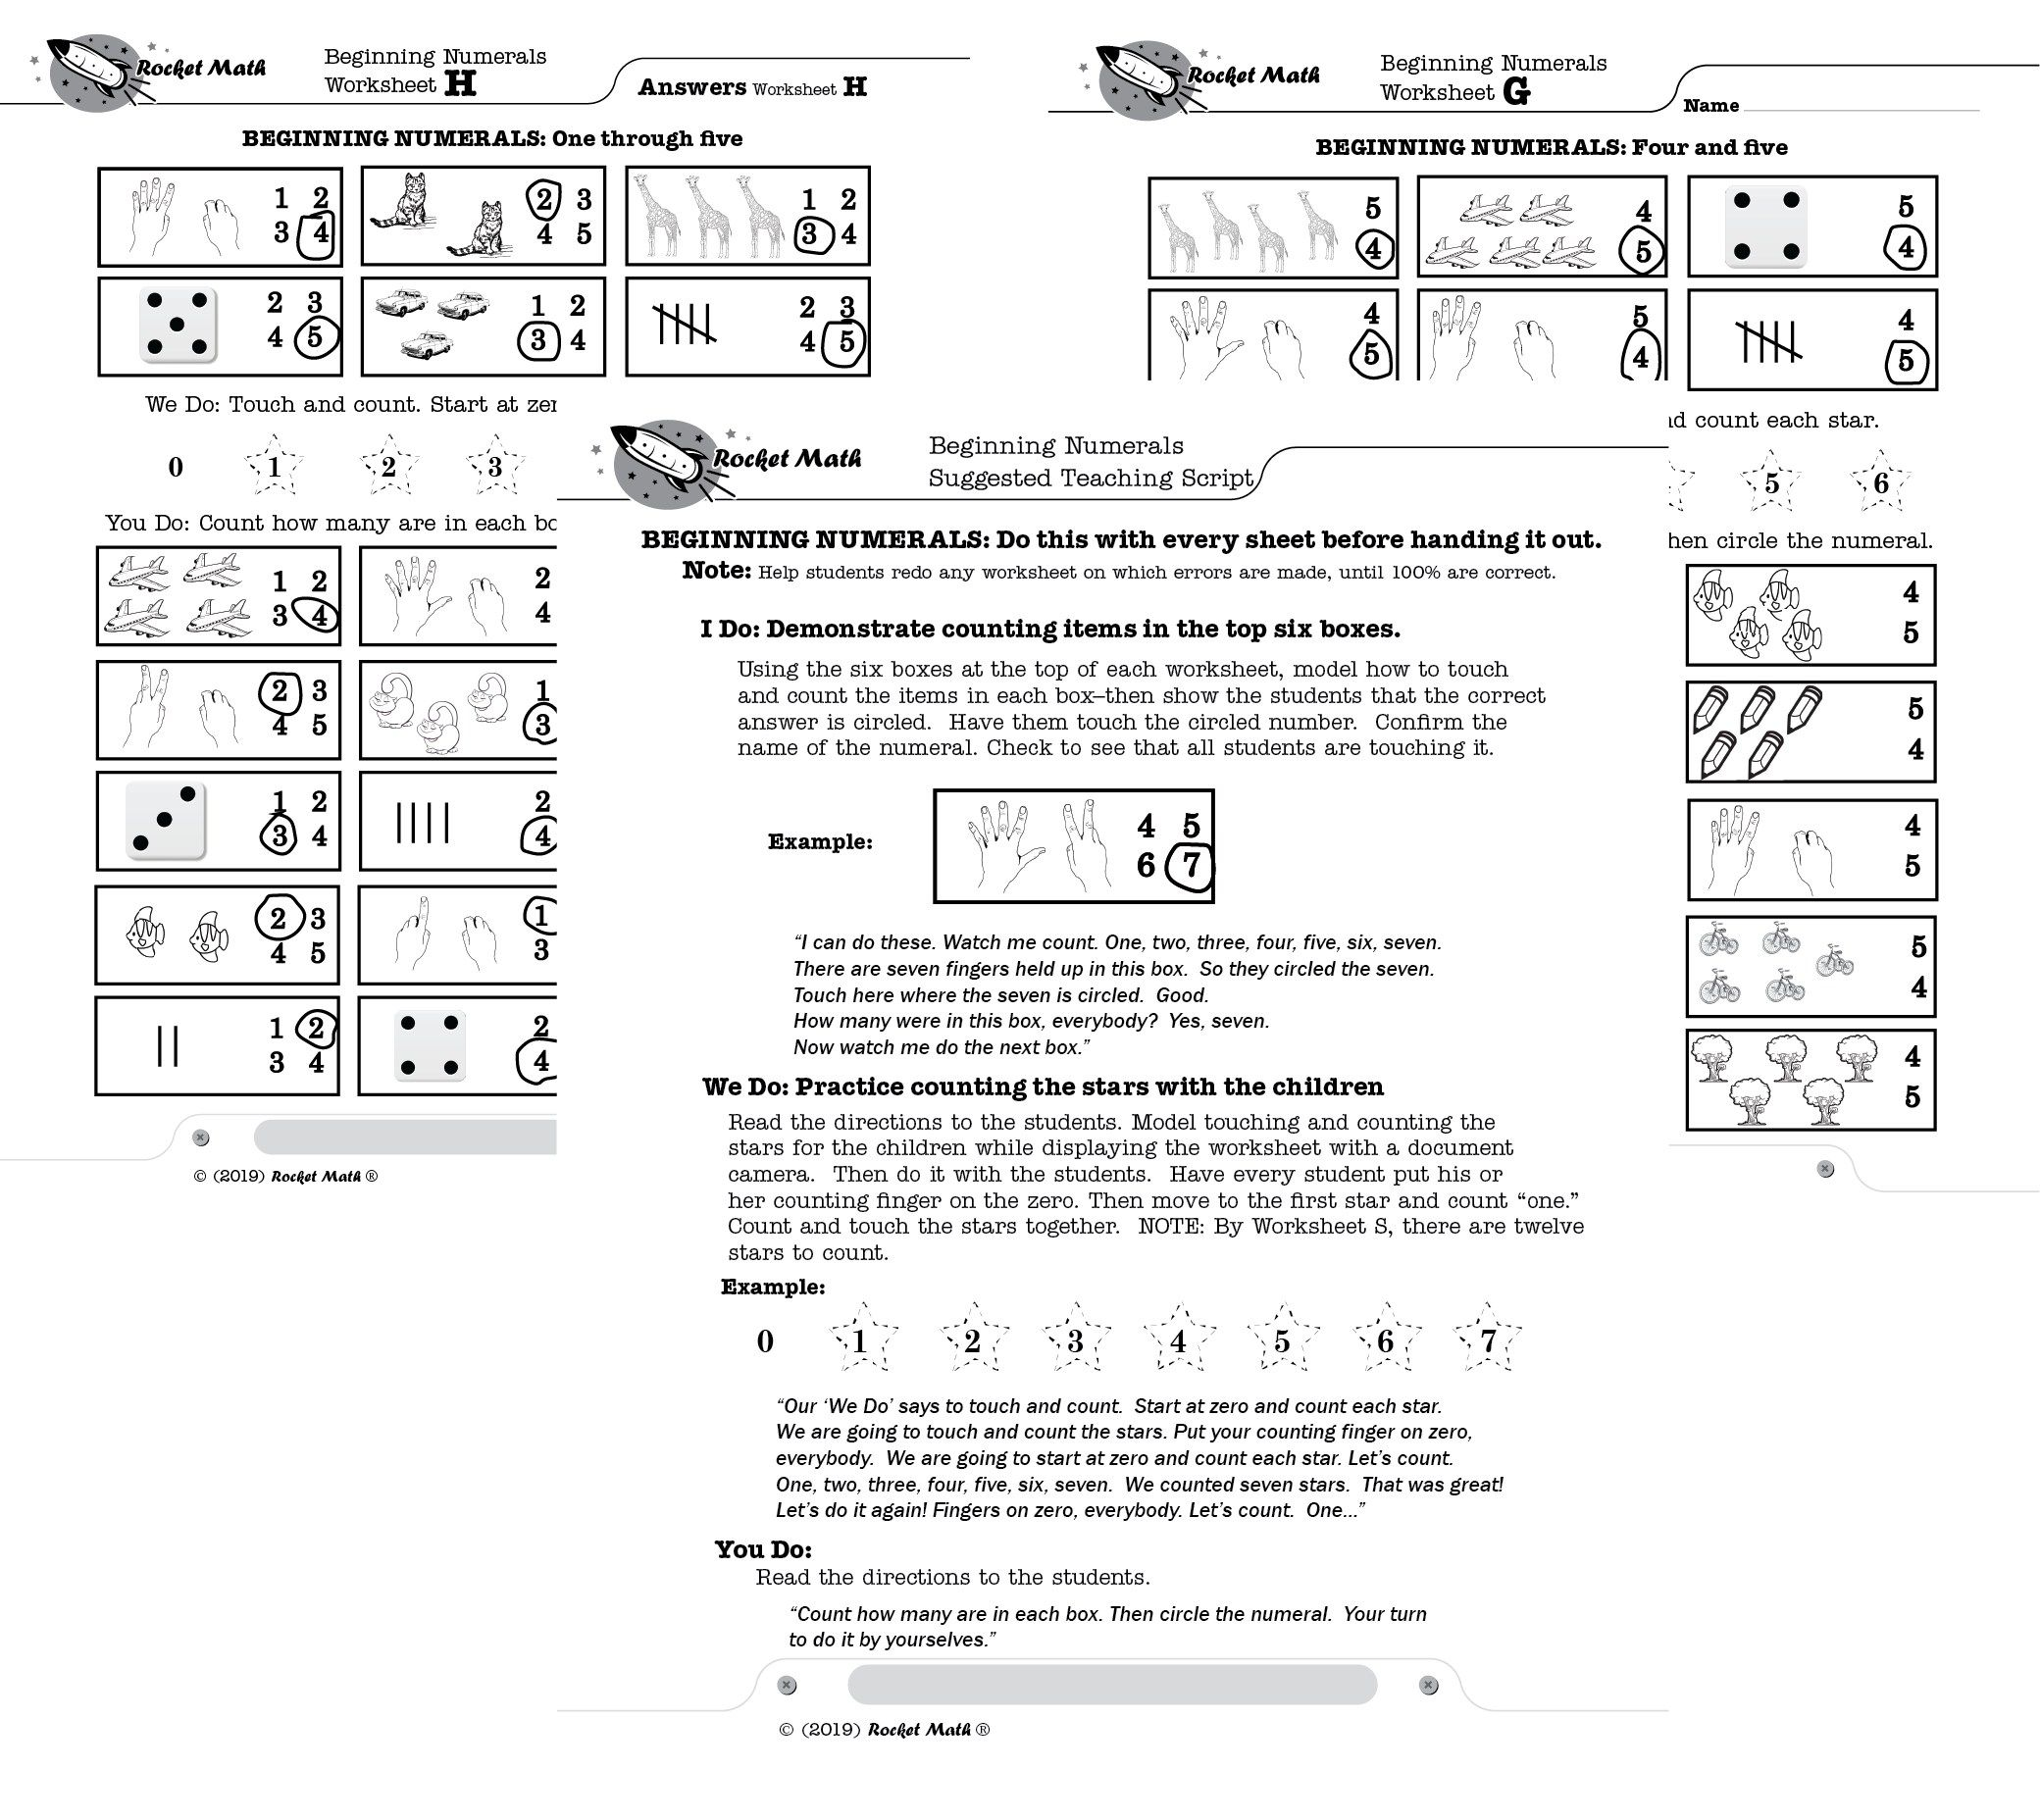 57 Multiplying Fractions And Whole Numbers Worksheet All About Worksheet Math Facts Addition Math Addition Basic Math [ 1856 x 2080 Pixel ]